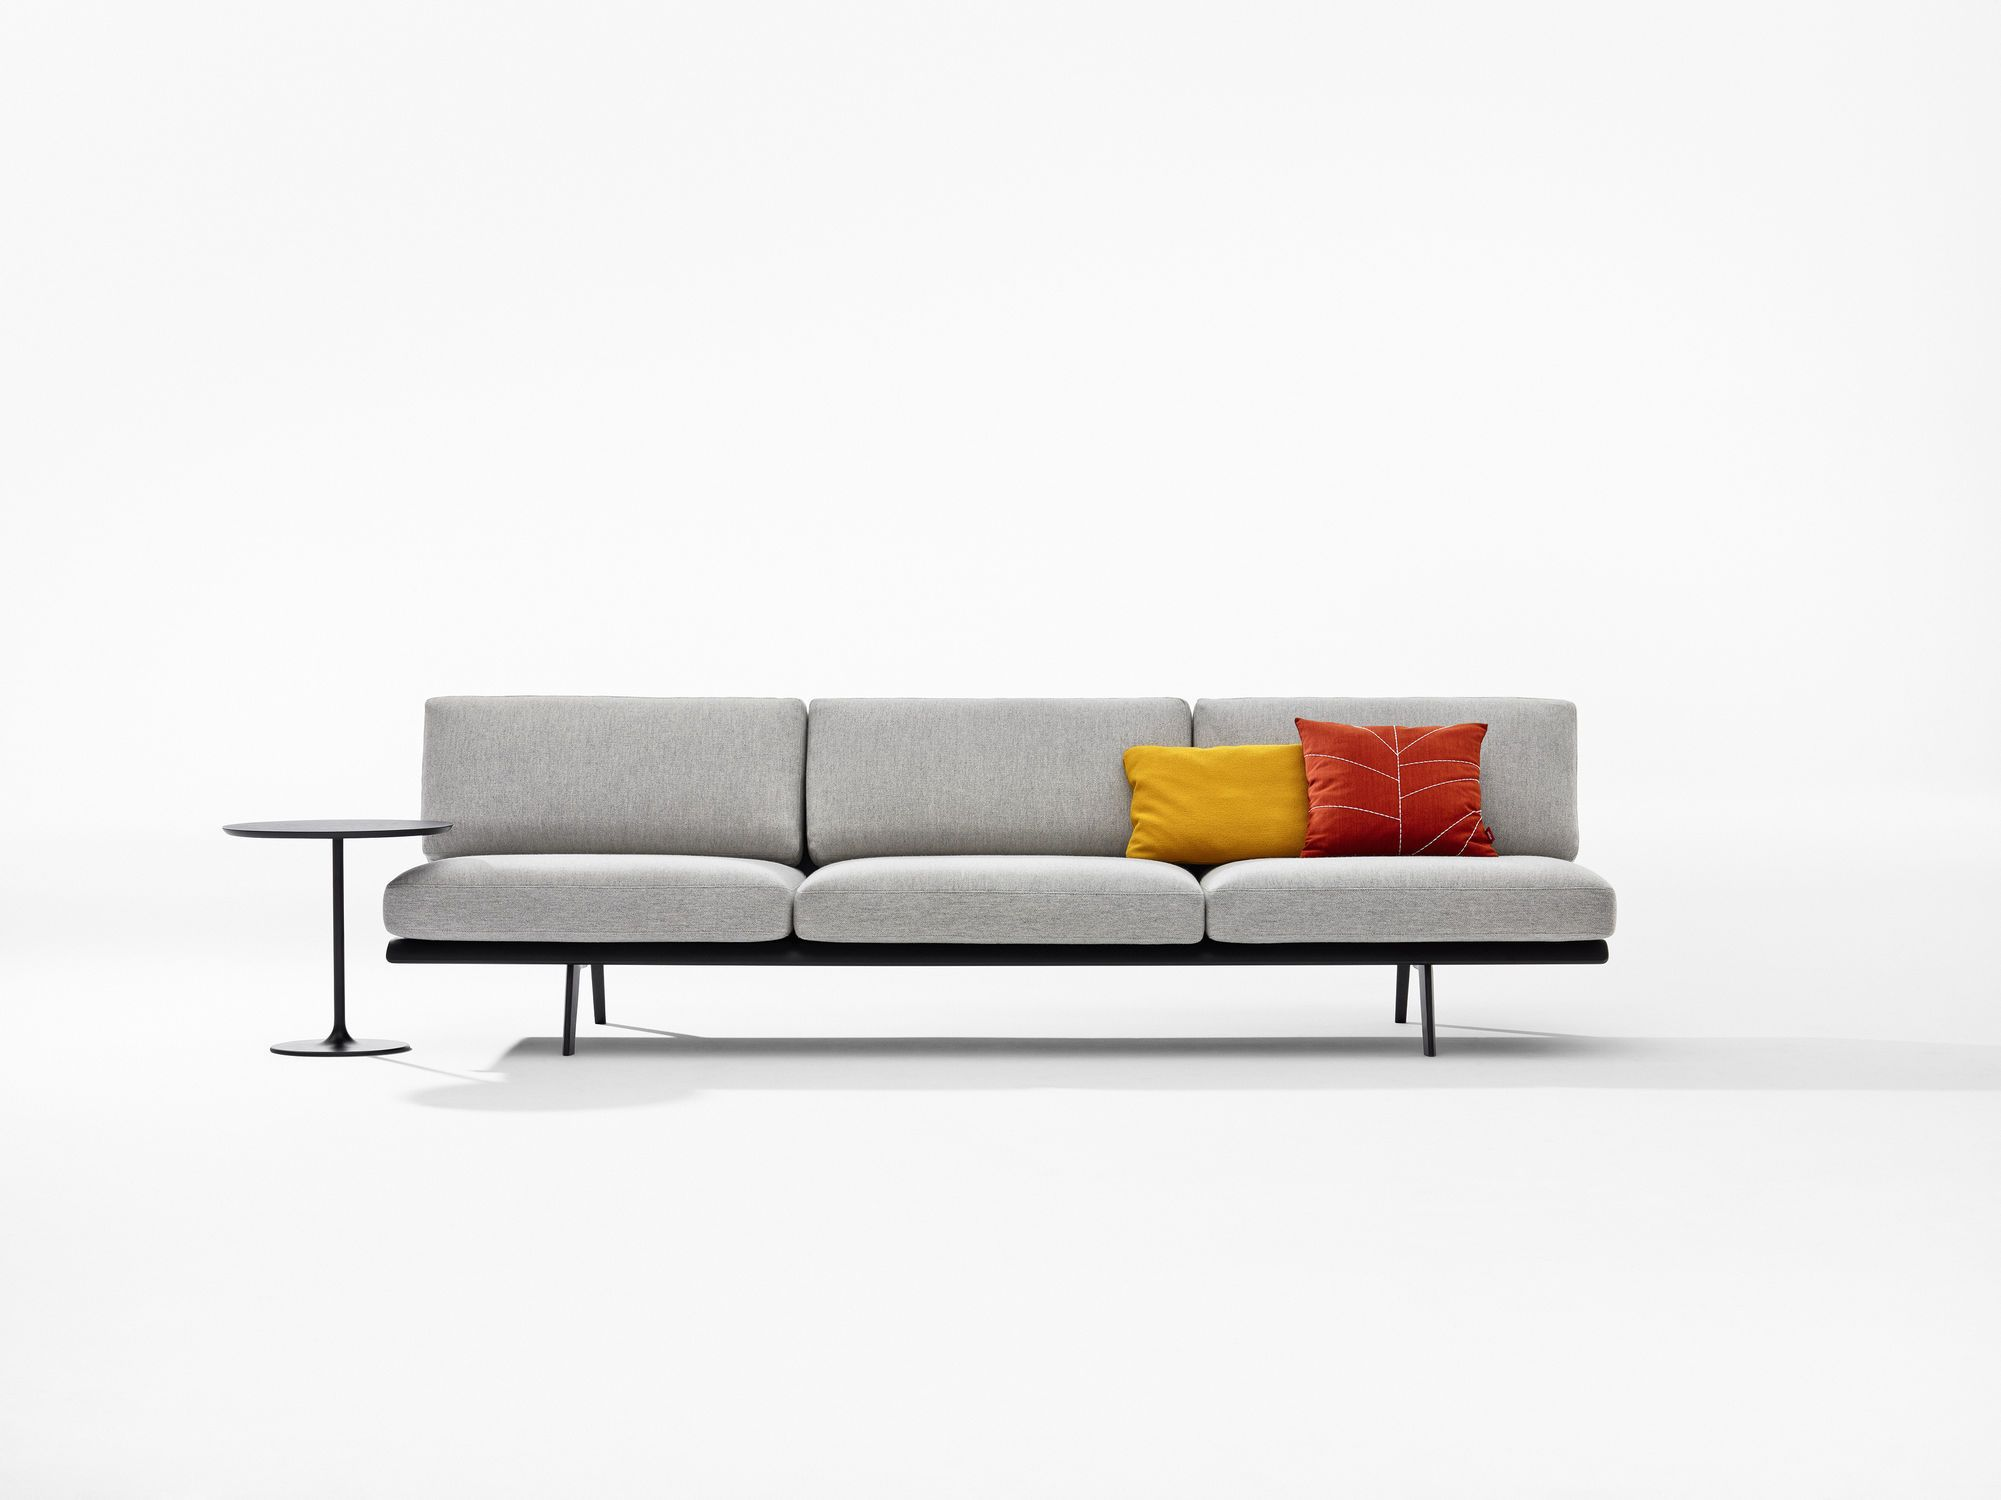 Tandem   Convertible Sofa   Emanuele Magini   Campeggi | Milano | Pinterest  | Tandem And Spaces